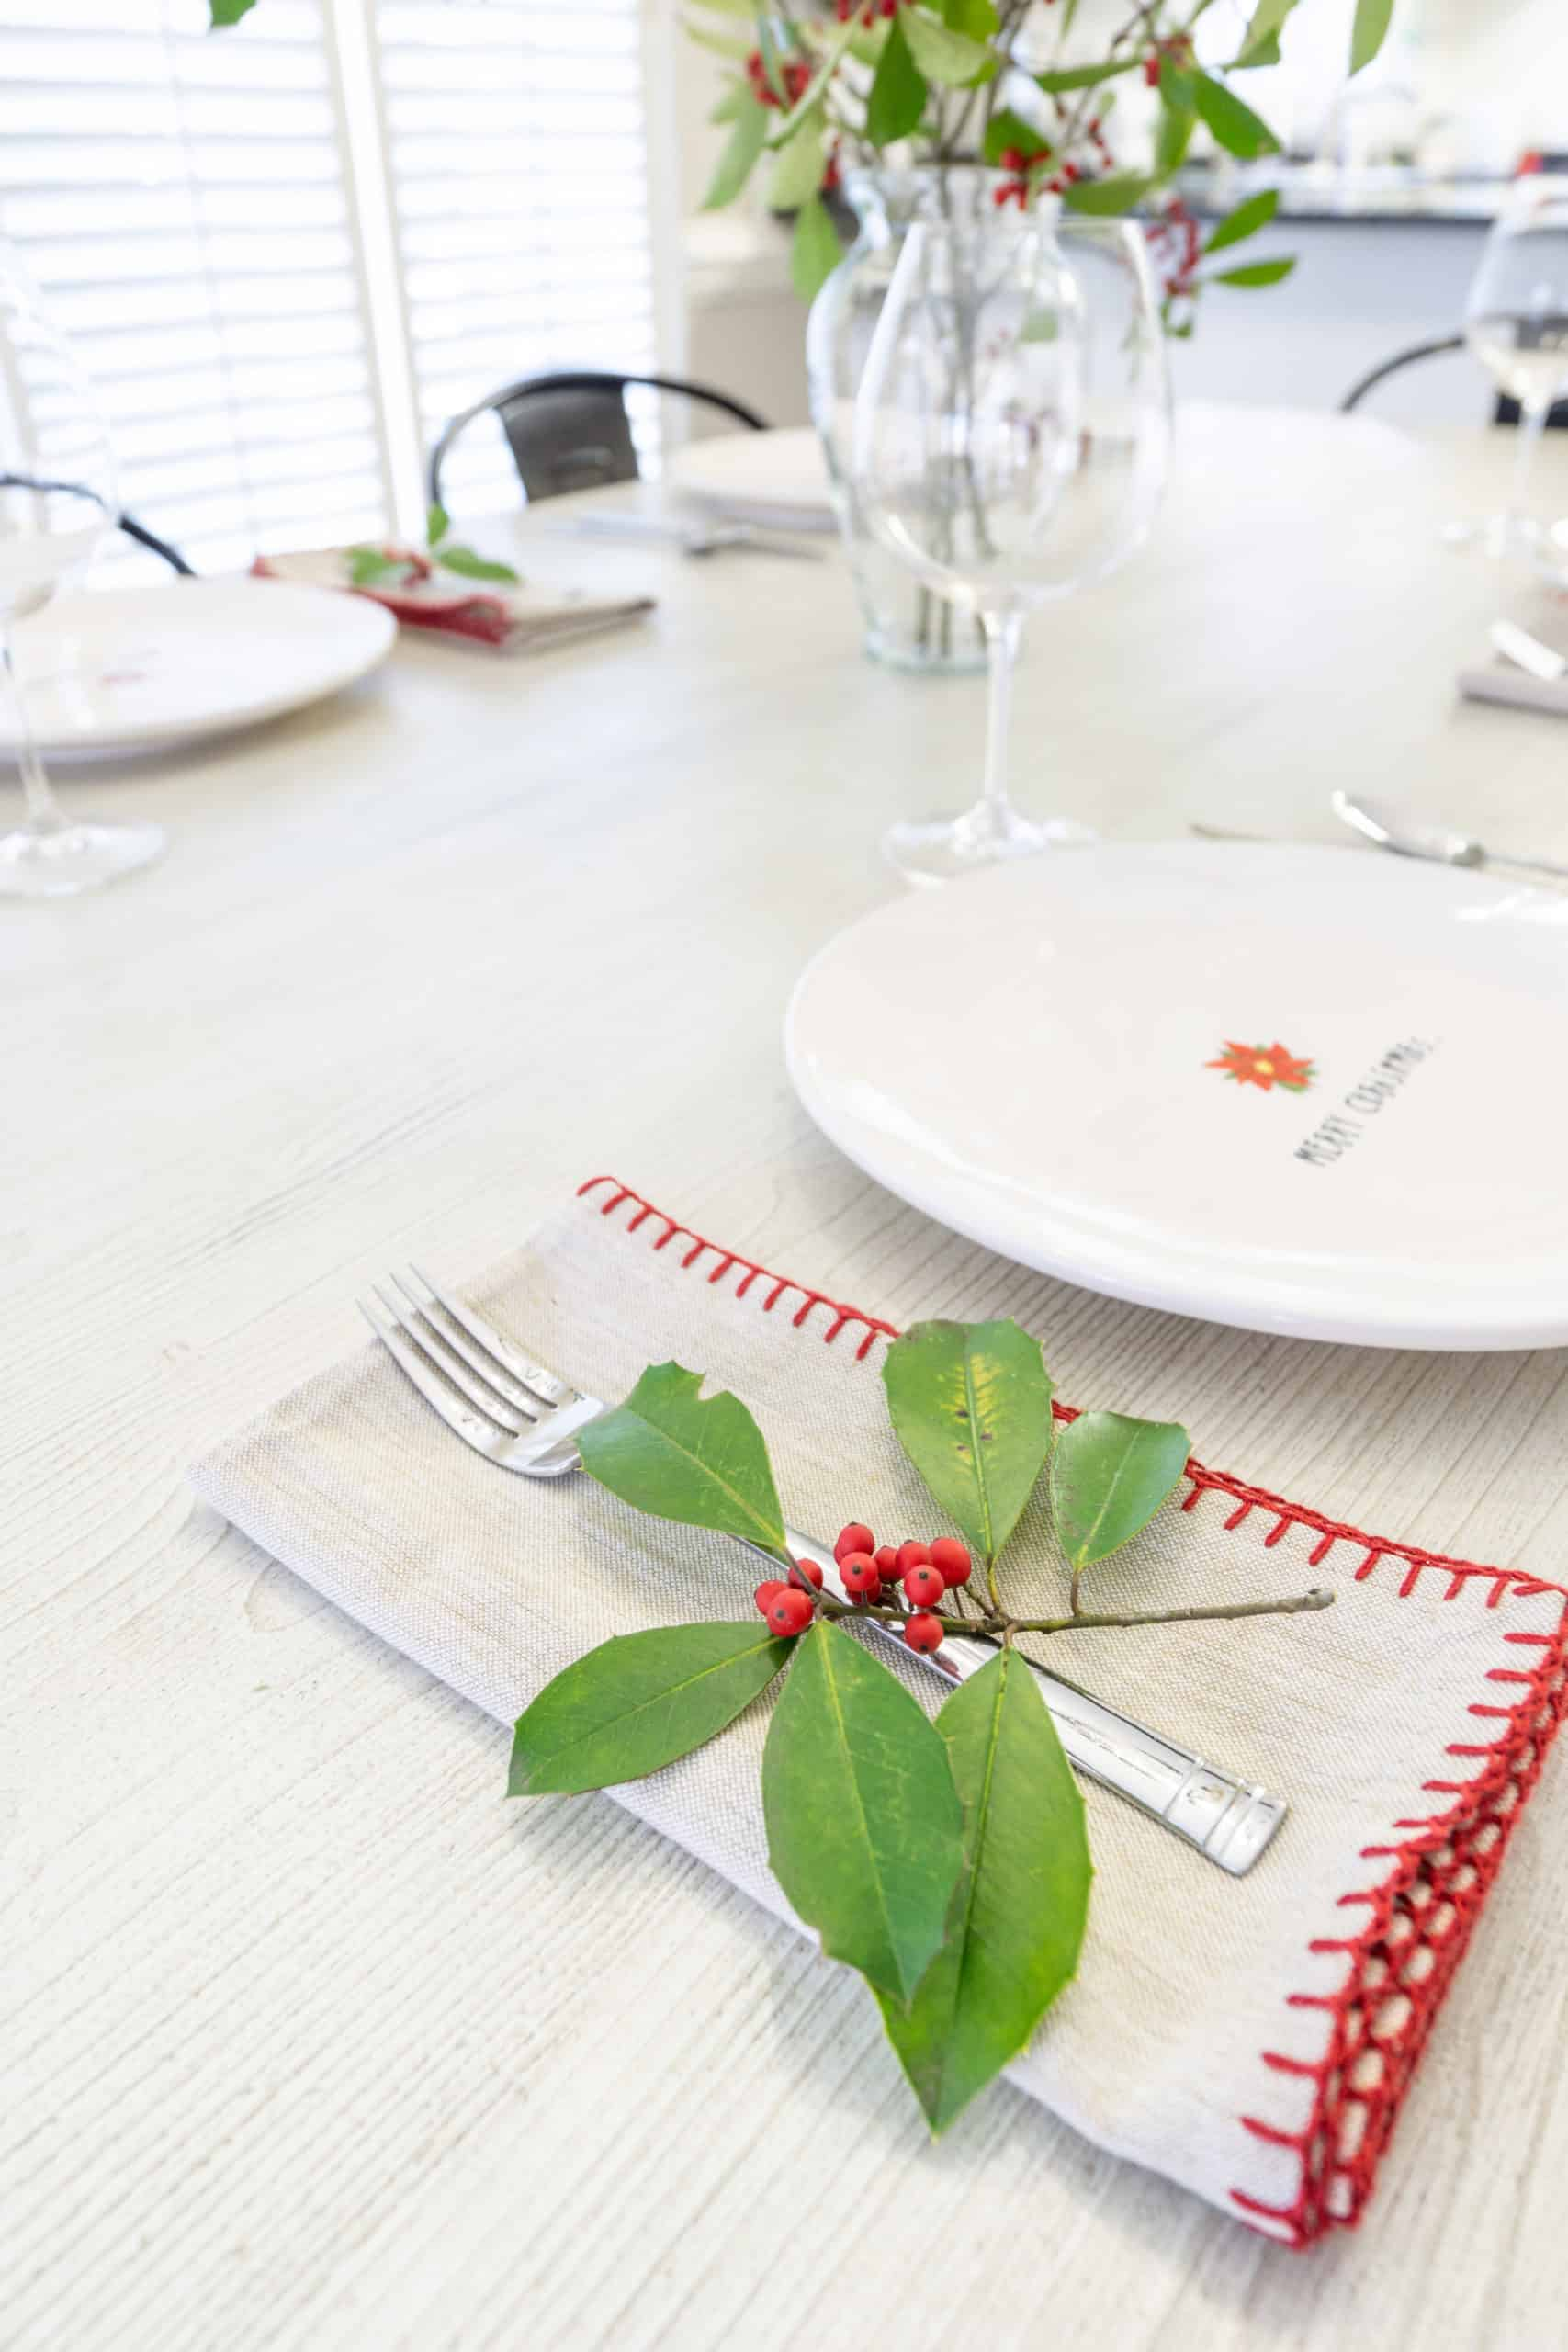 Create a festive table with live holly. This simpleChristmas table setting with holly is easy and inexpensive to put together.